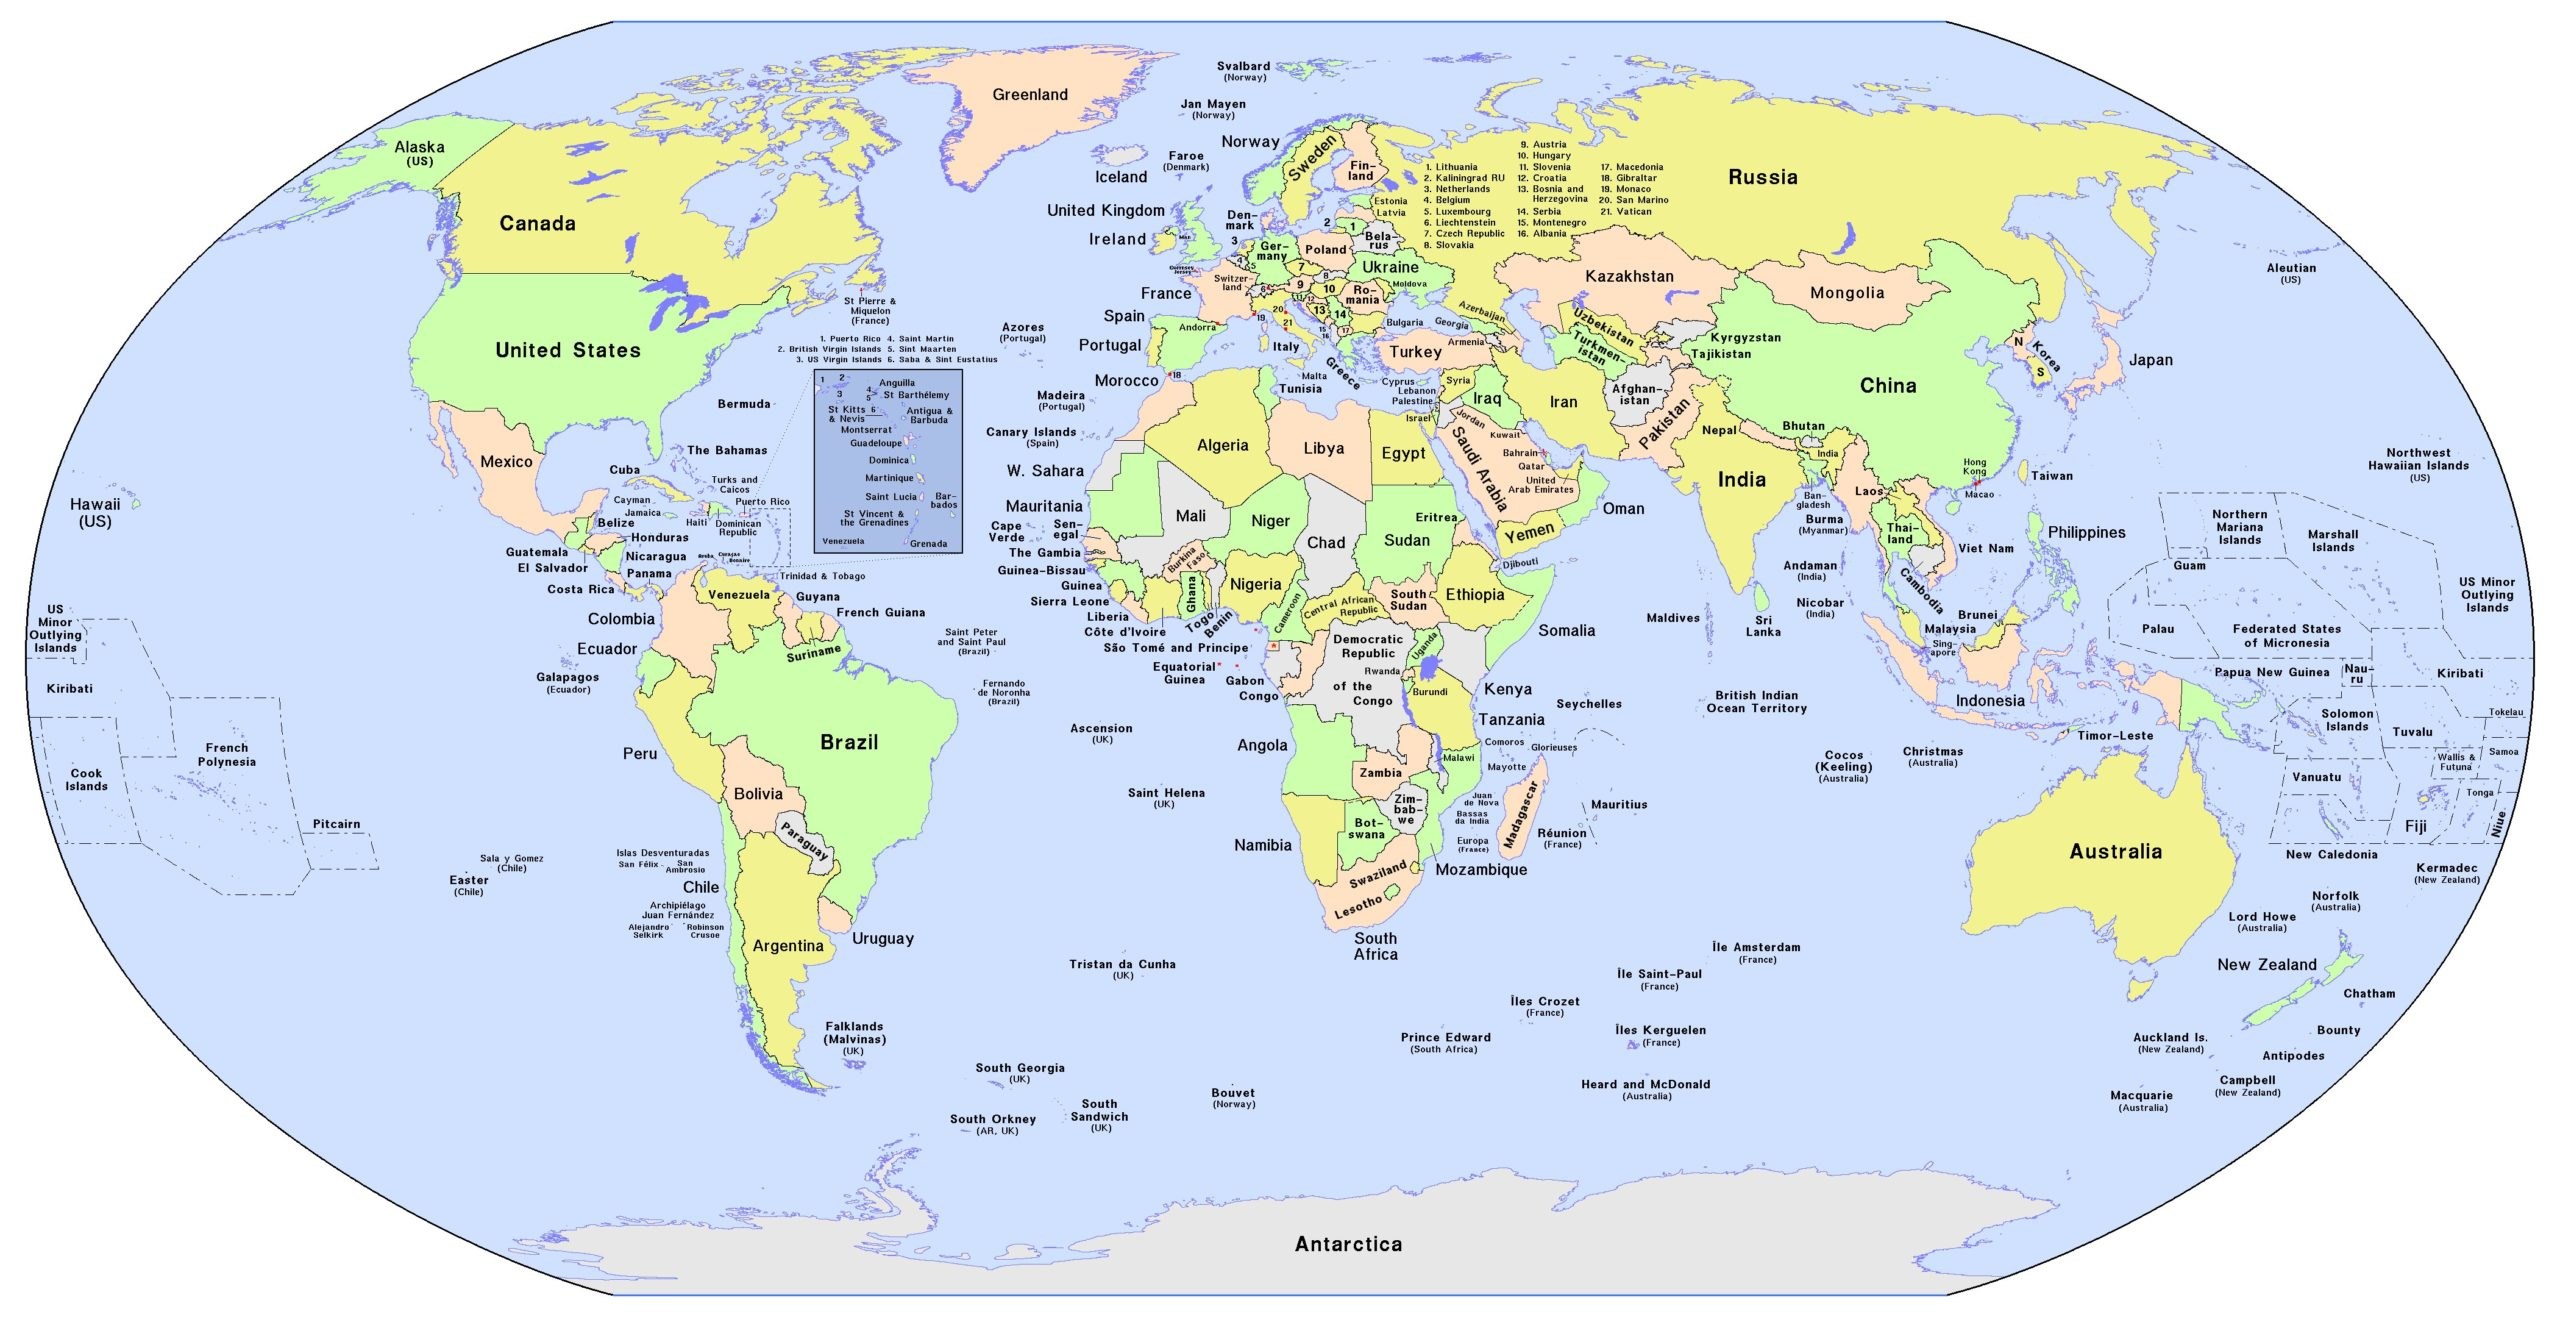 Printable World Map with Countries Labelled